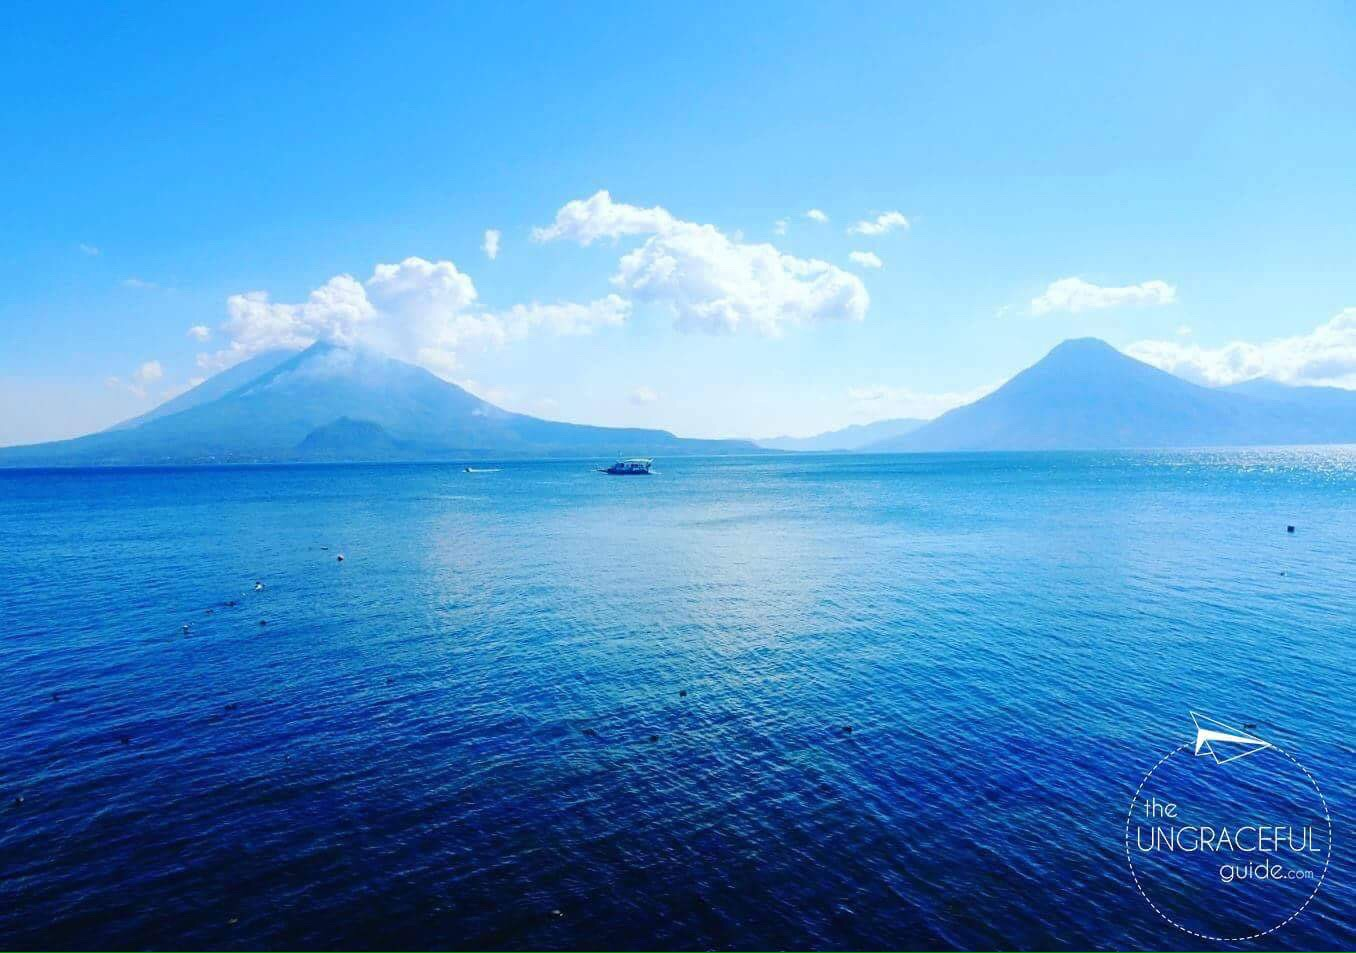 "The Ungraceful Guide: Lake Atitlán Guatemala <img src=""data:image/gif;base64,R0lGODdhAQABAPAAAP///wAAACwAAAAAAQABAEACAkQBADs="" data-lazy-src=""images/"" width=""800"" height=""600"" alt=""lake atitlán - img 1072 - Guatemala: Loving Life on Lake Atitlán"">"